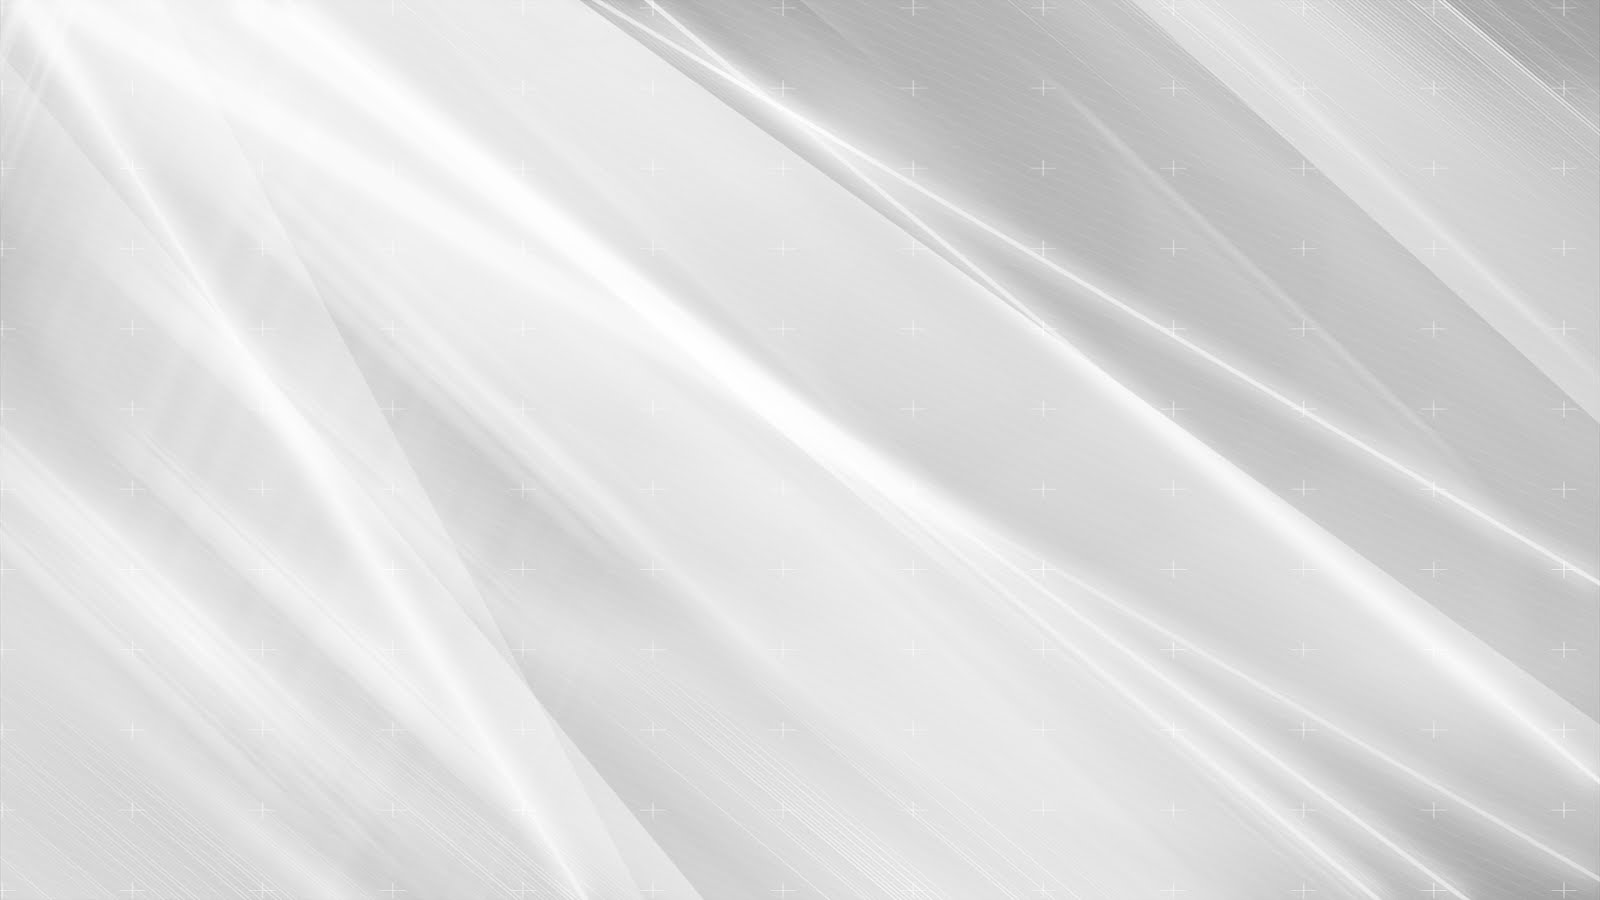 Wallpaper Hd Abstract White